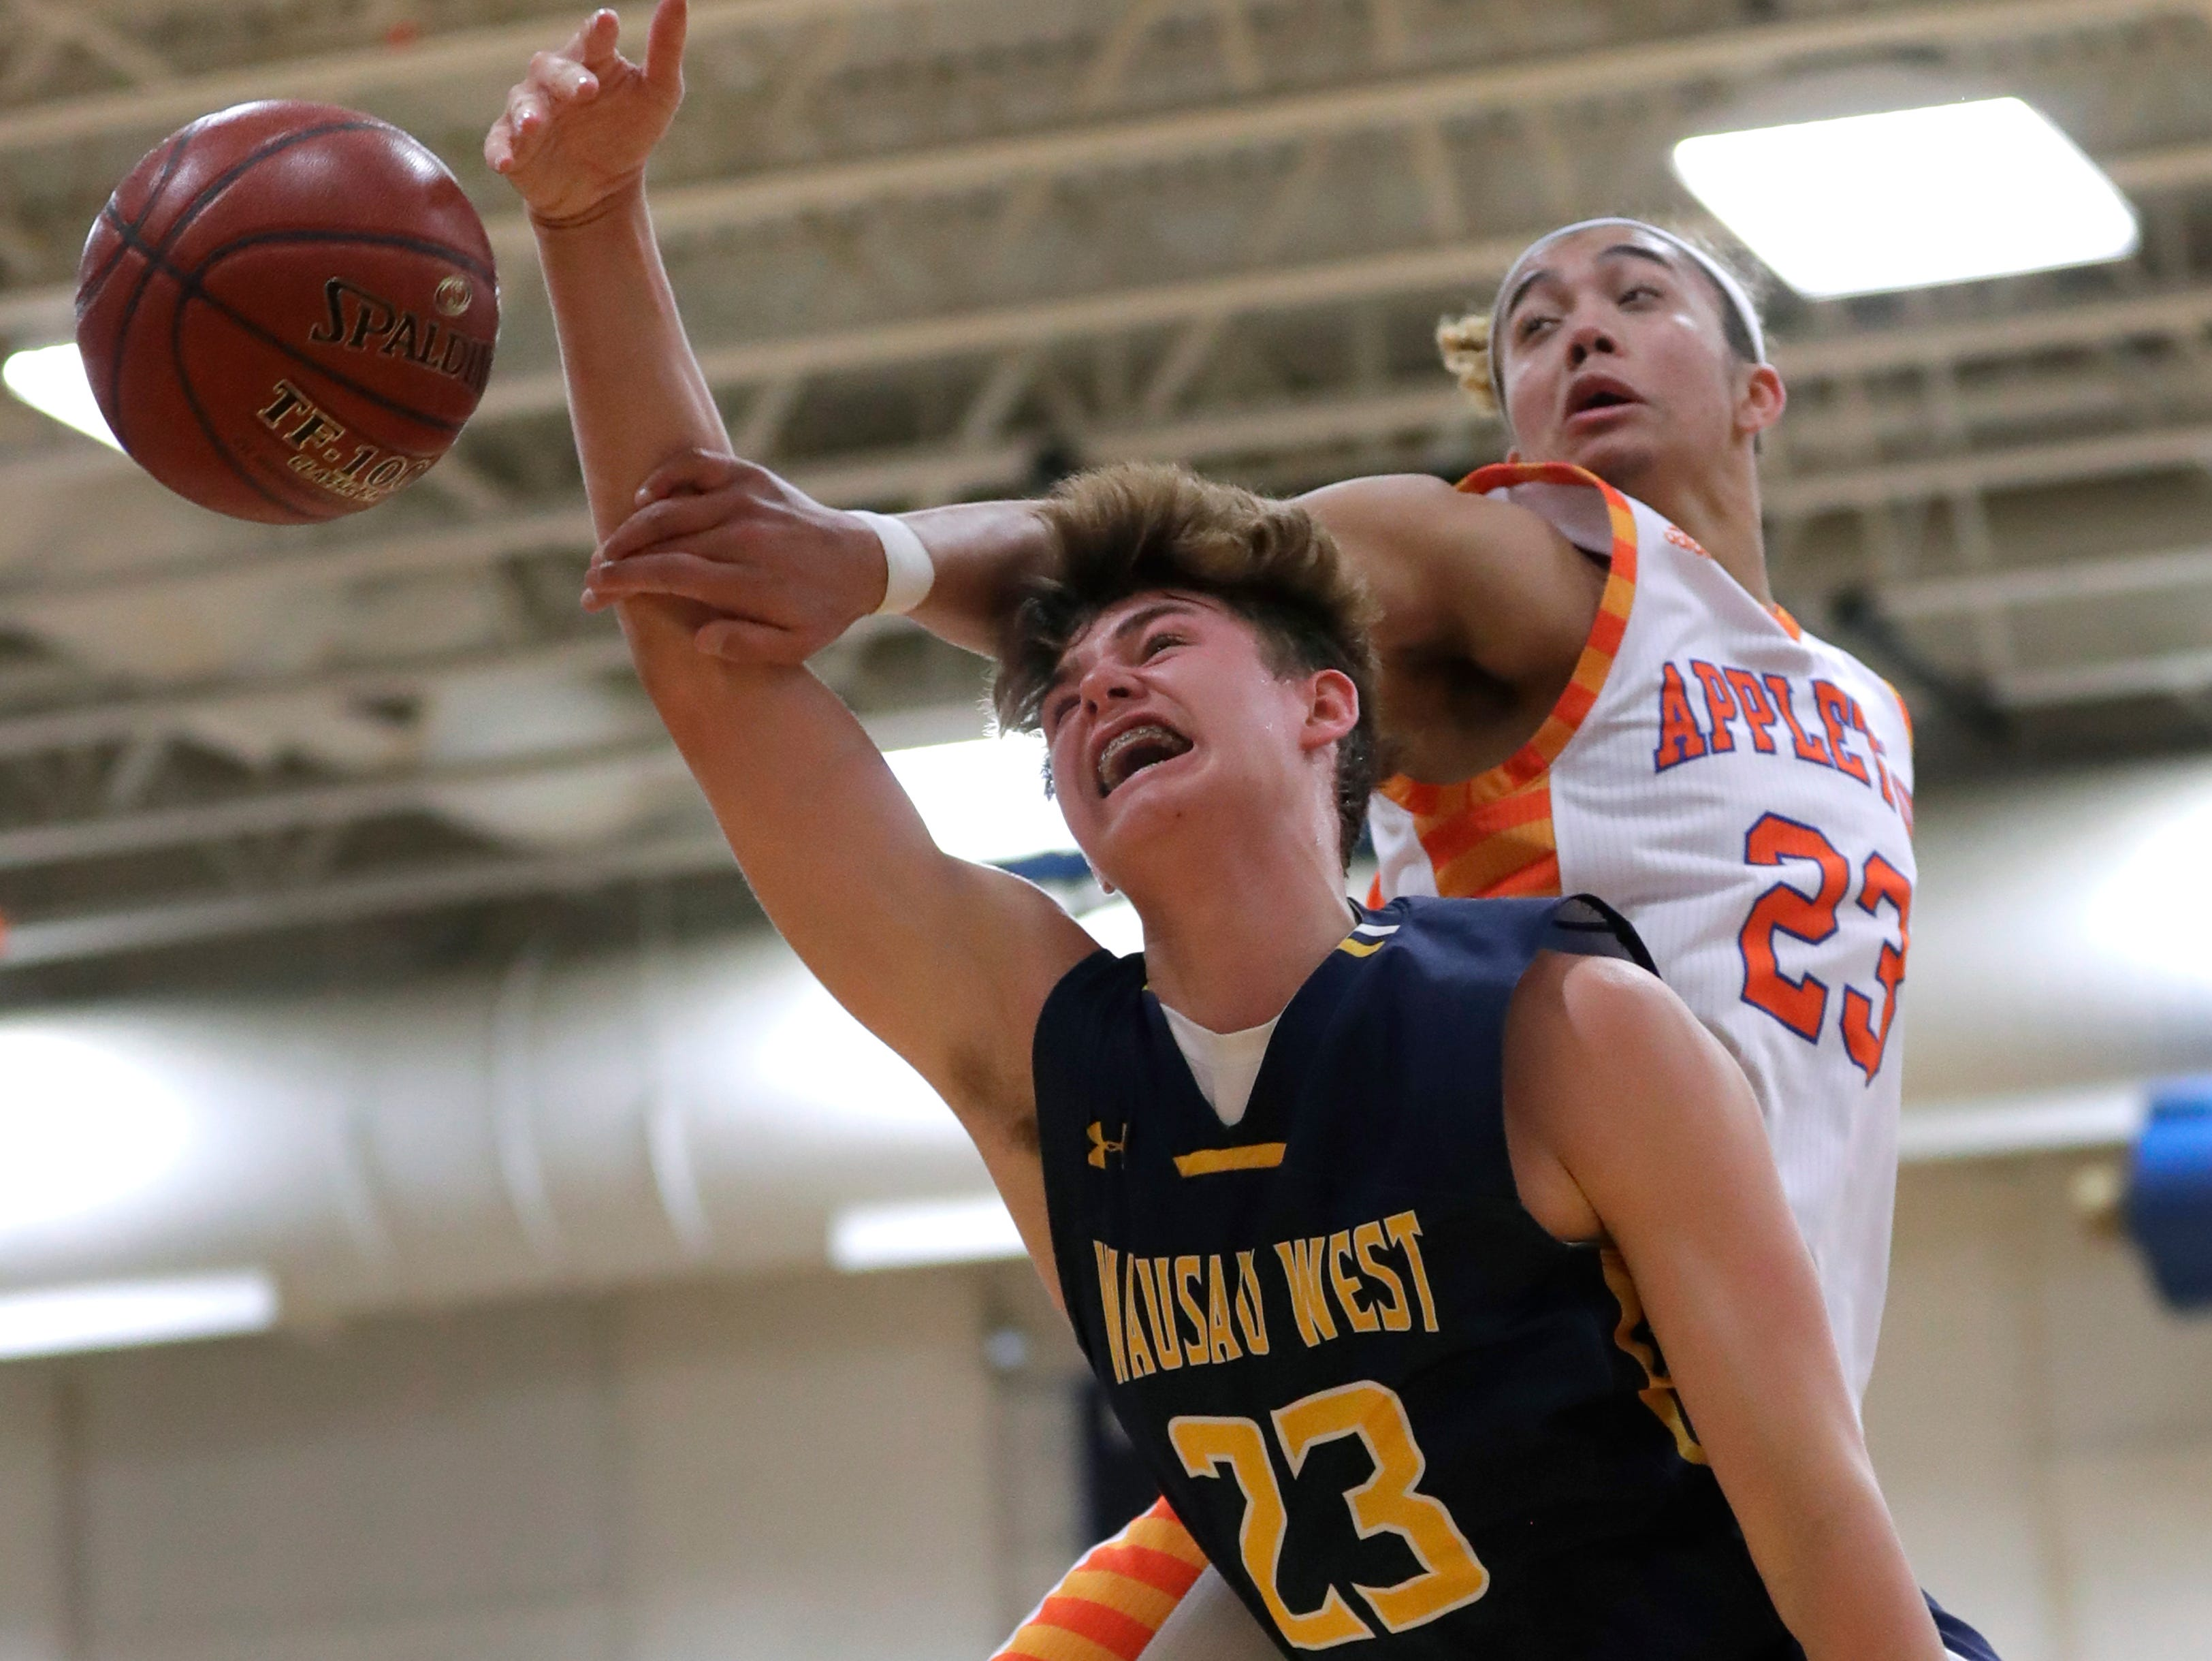 Appleton West  High School's Bubba Thompson (23) fouls Wausau West High School's Logan White (23) as he puts up a shot during their boys basketball game Friday, December 28, 2018, in Appleton, Wis. 